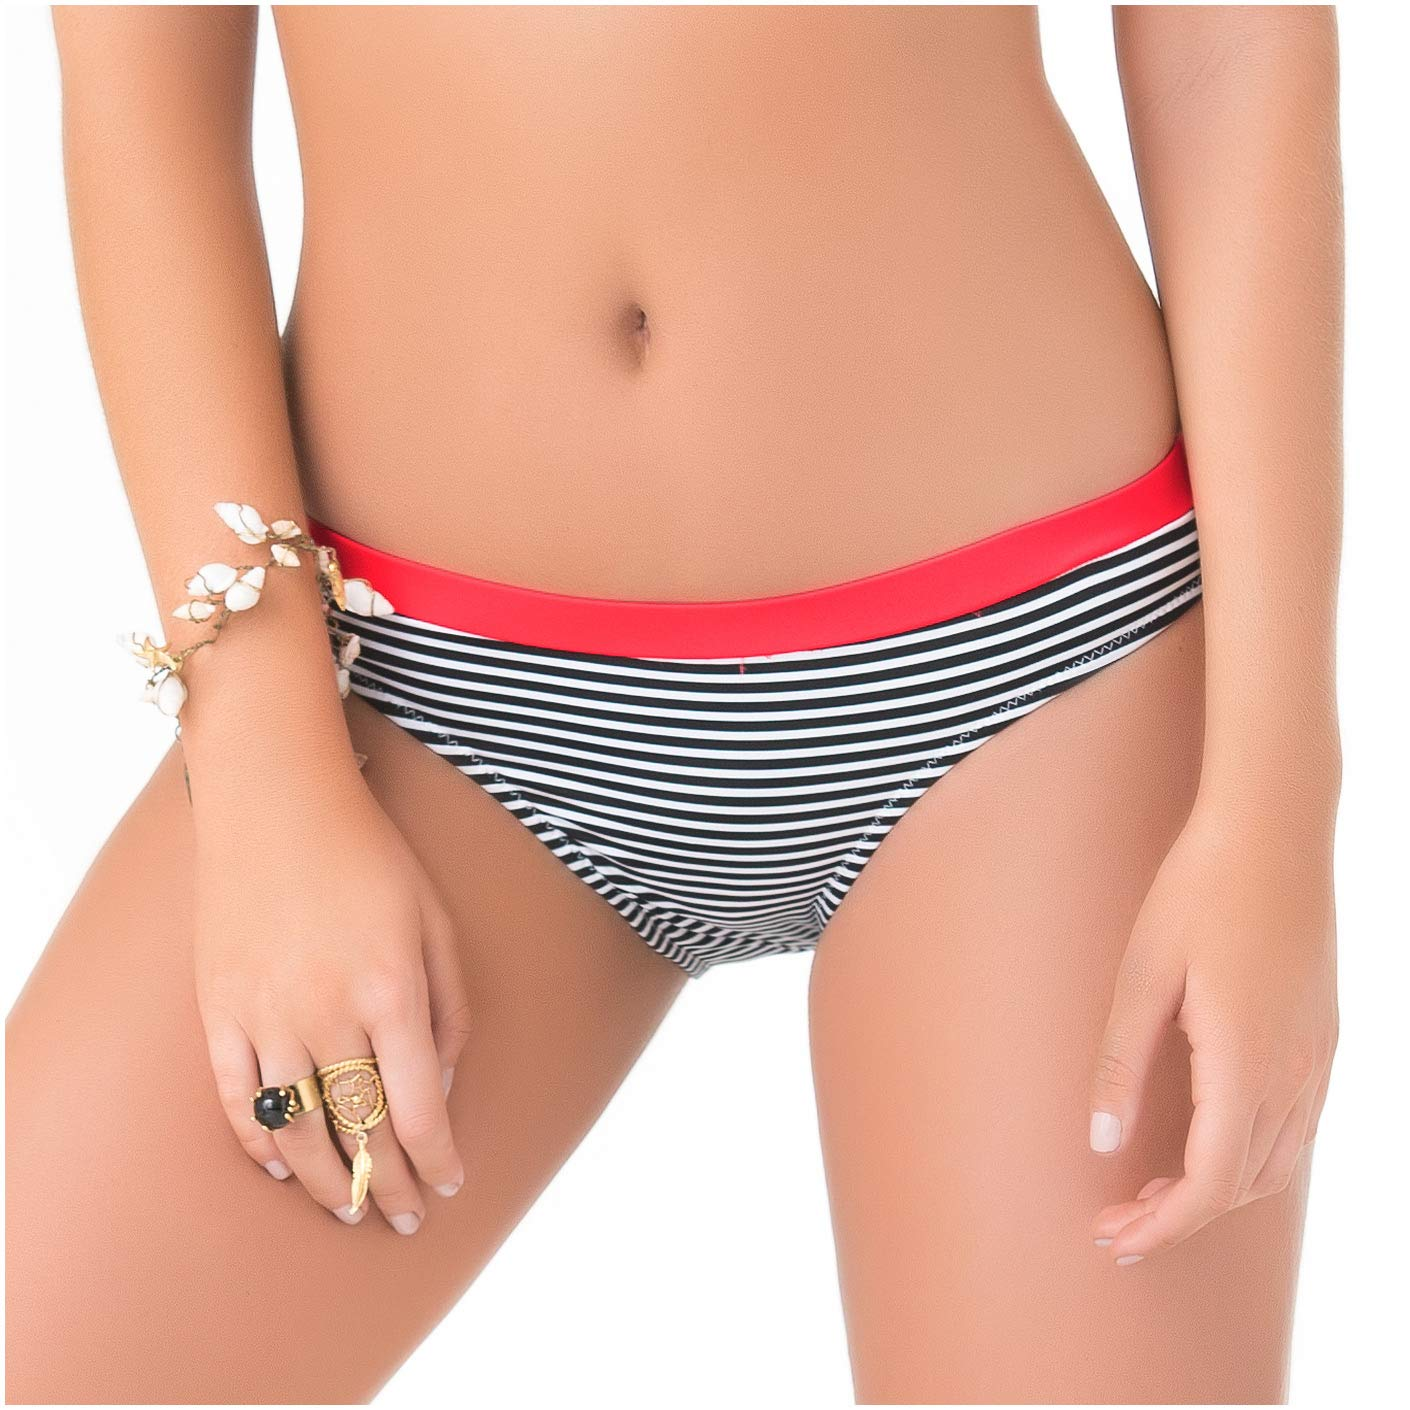 f8717893a Amazon.com  PHAX Colombian Swimwear Full Coverage Bikini Bottoms for Women